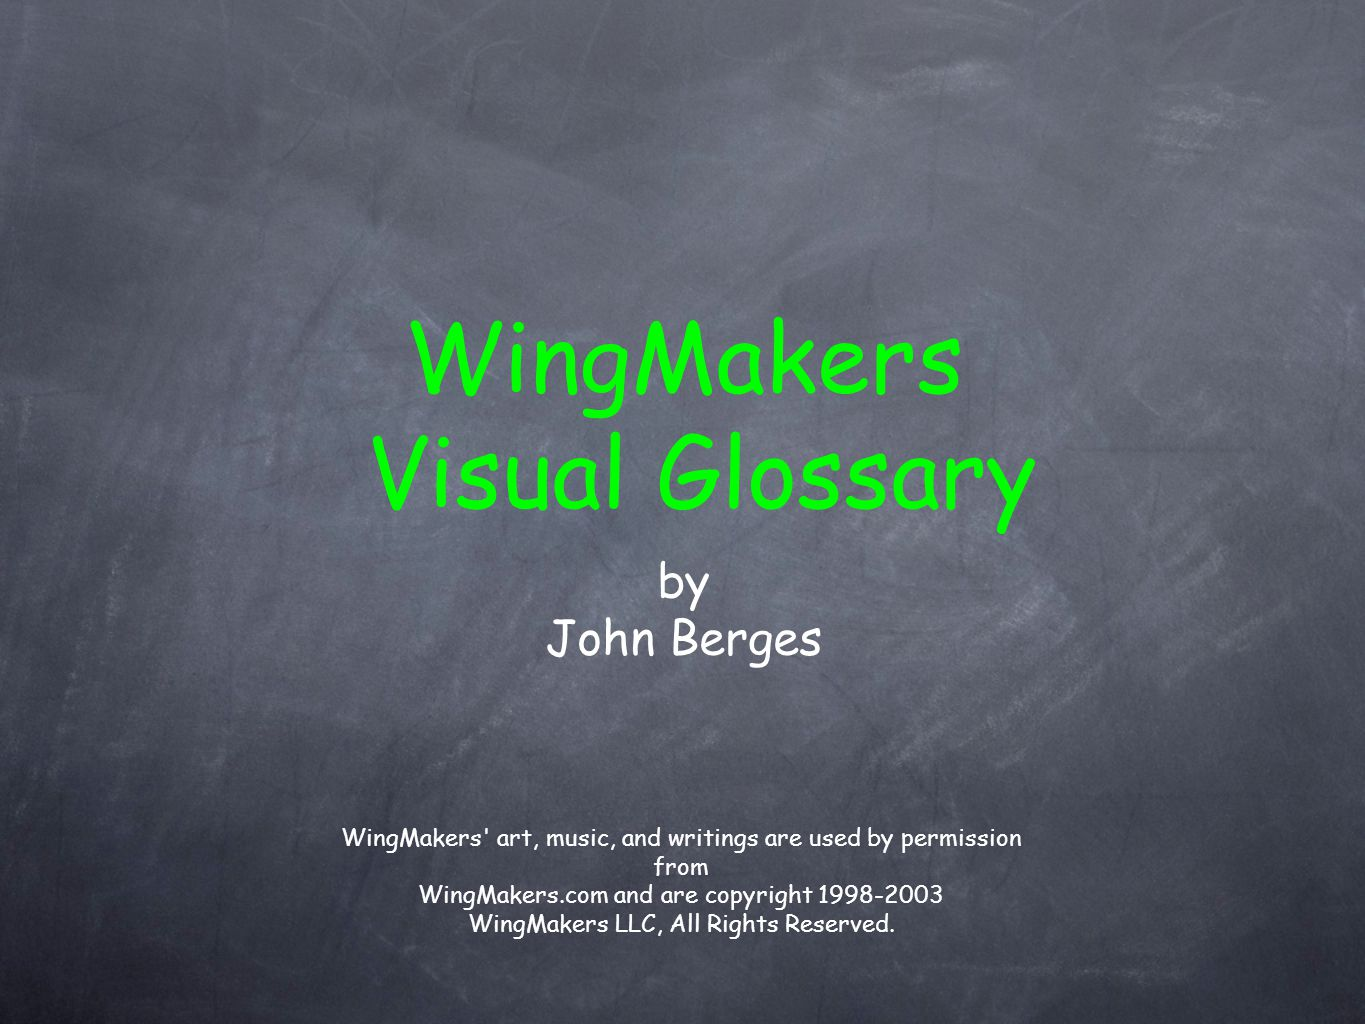 by John Berges WingMakers Visual Glossary WingMakers art, music, and writings are used by permission from WingMakers.com and are copyright 1998-2003 WingMakers LLC, All Rights Reserved.